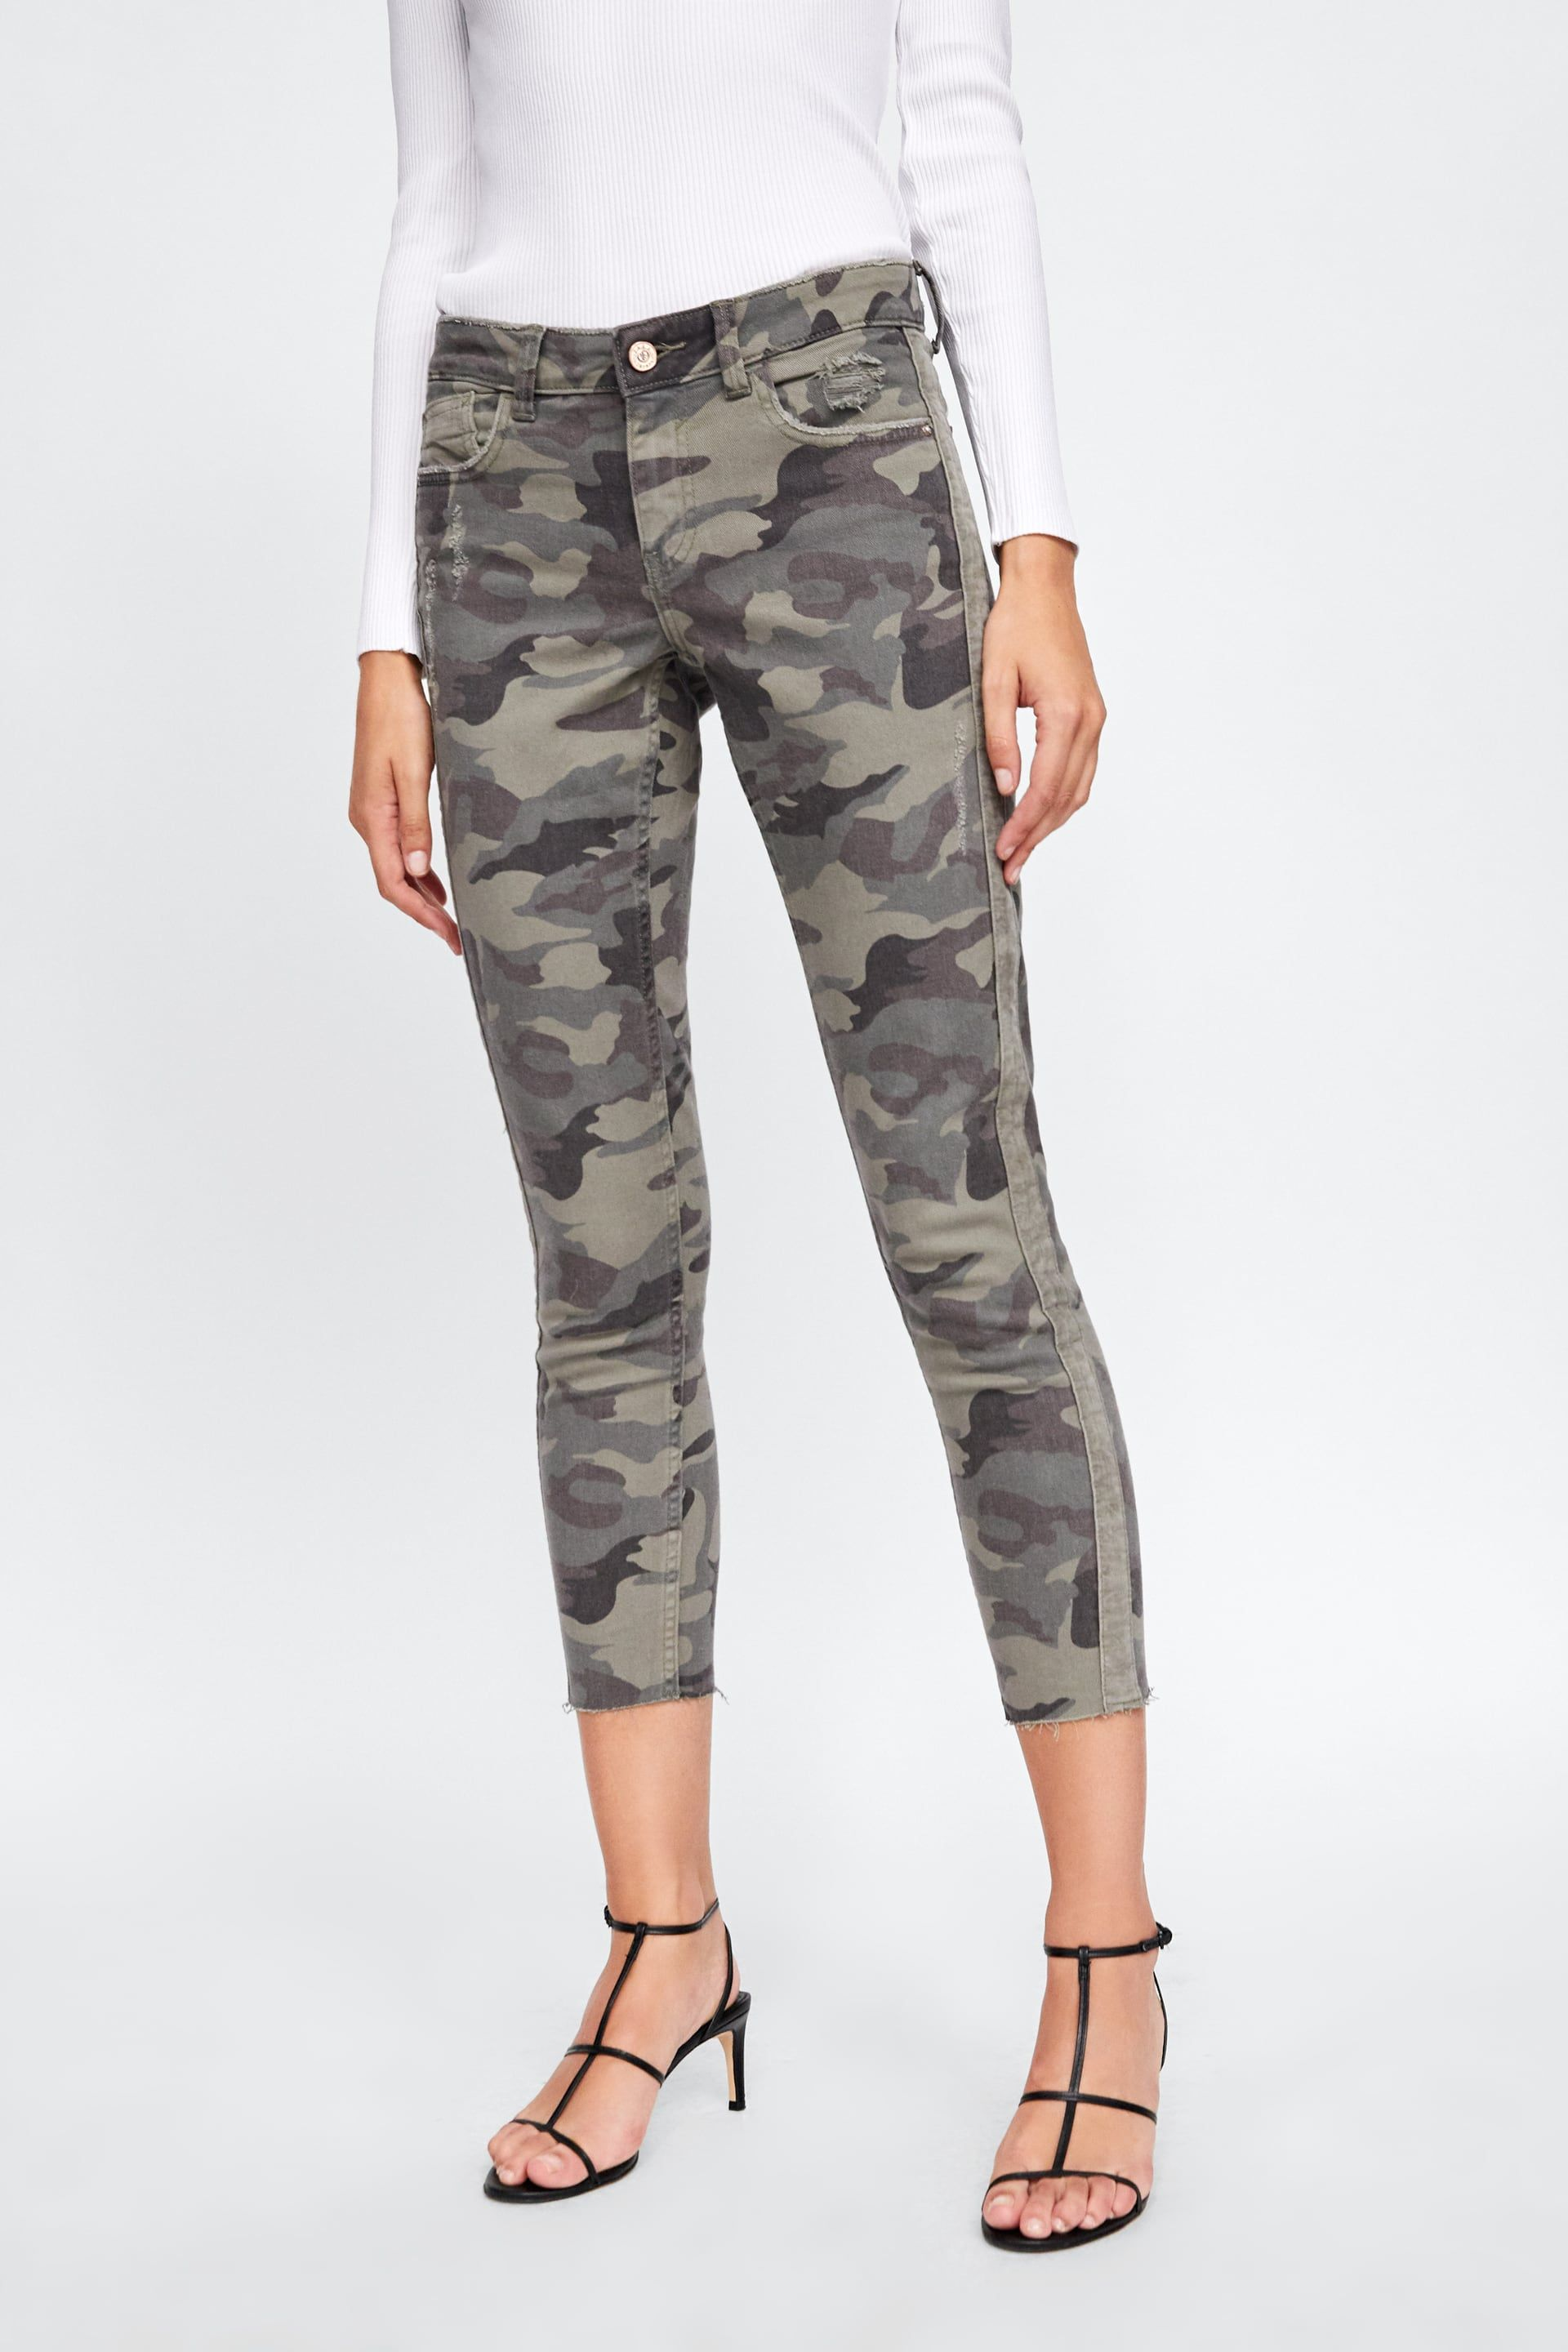 22bcd434 Image 2 of Z1975 CAMOUFLAGE JEANS from Zara | : denim A/W ...